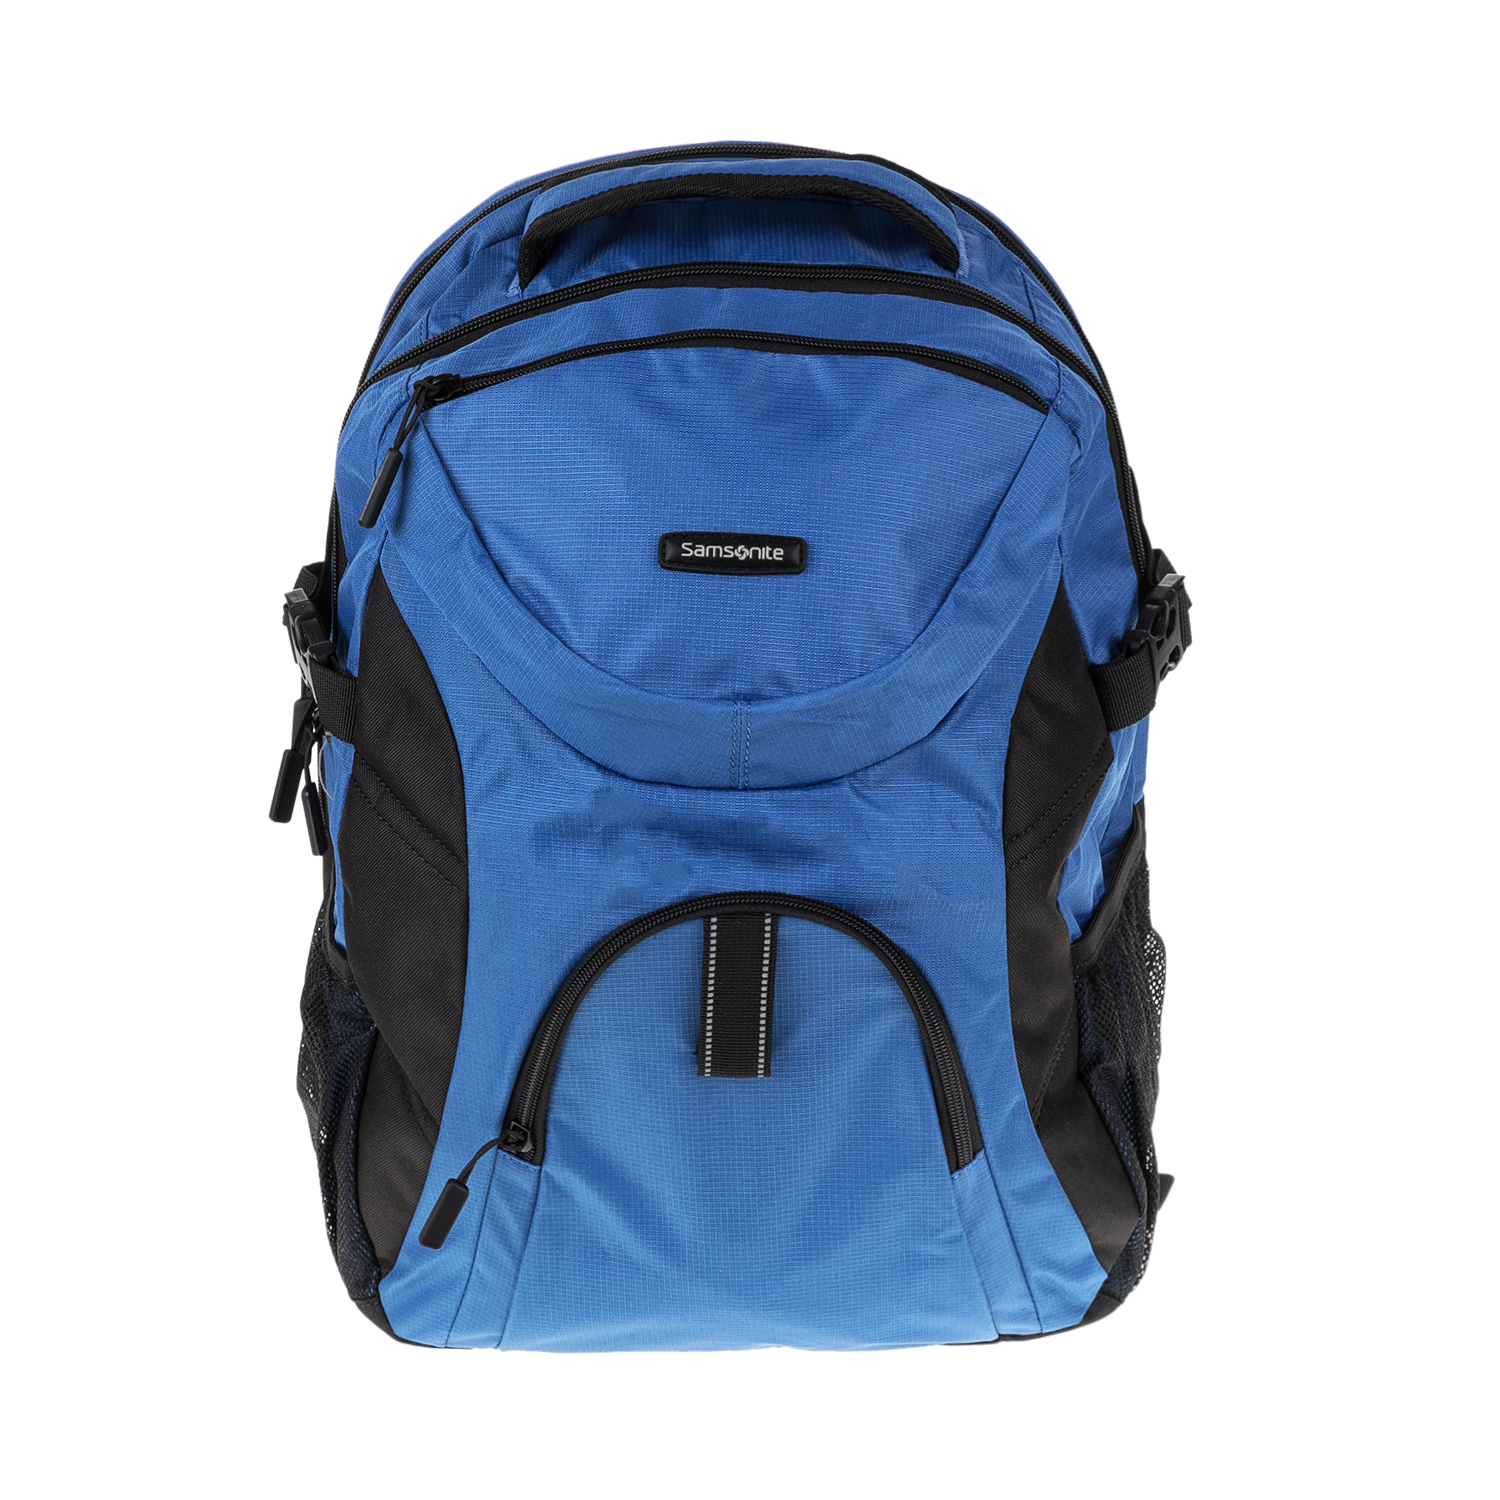 SAMSONITE – Τσάντα πλάτης WANDERPACKS LAPTOP BACKPACK L